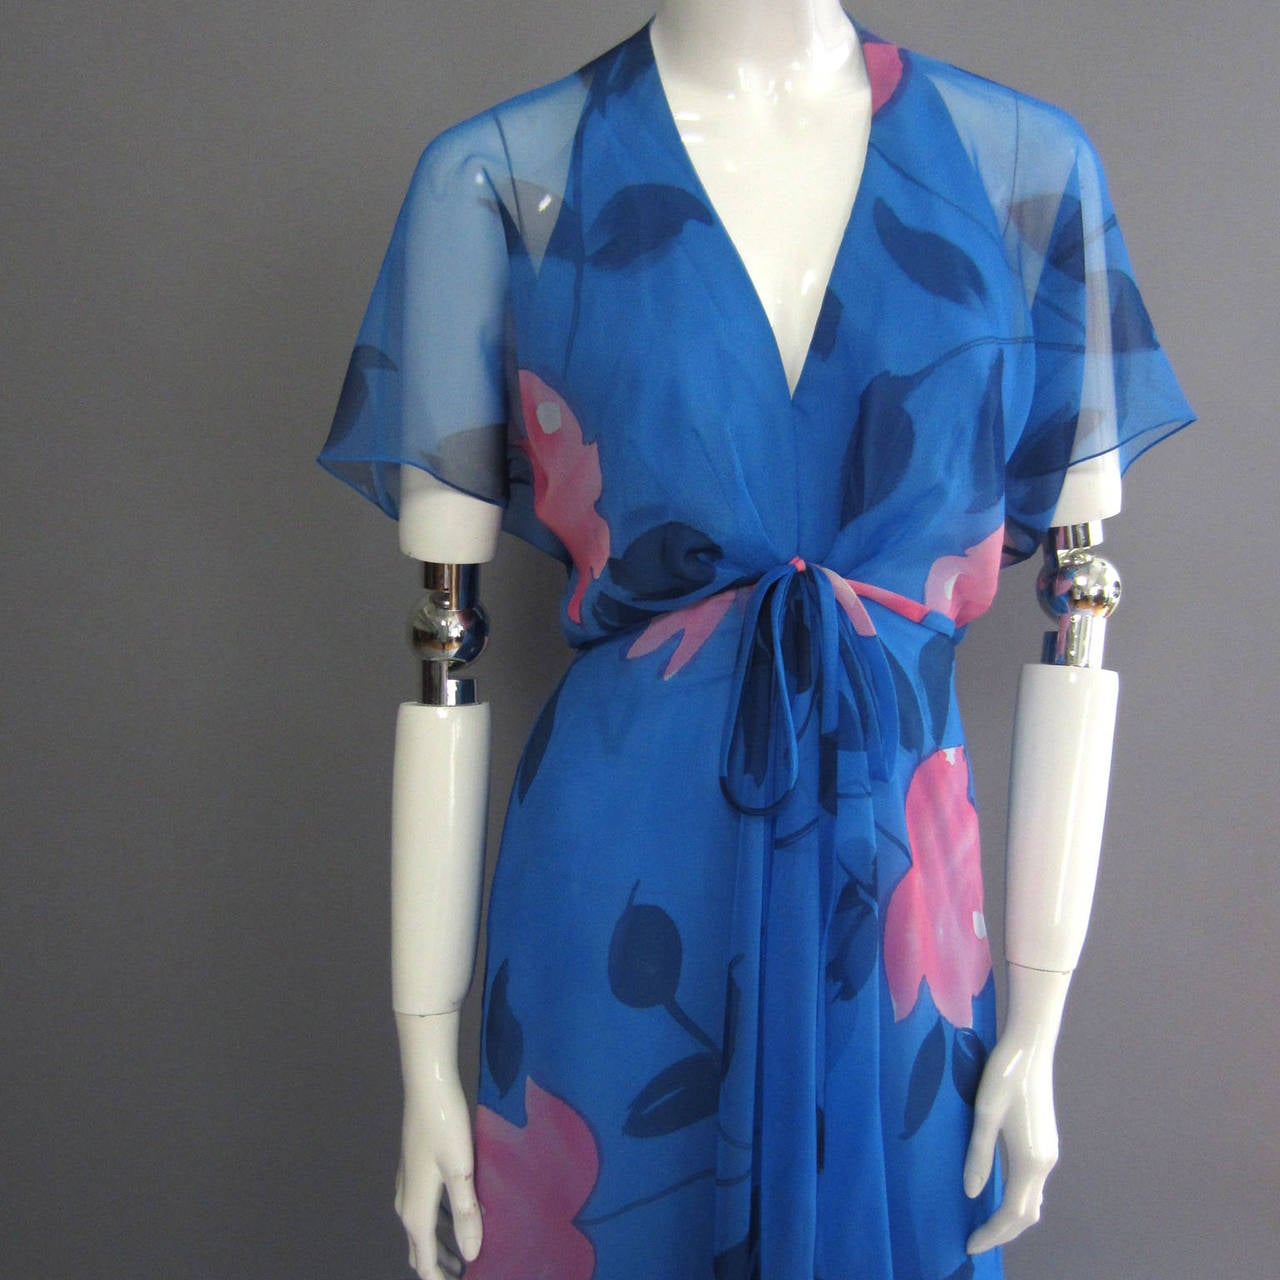 1970s ESTEVEZ Floral Print Maxi Dress 4